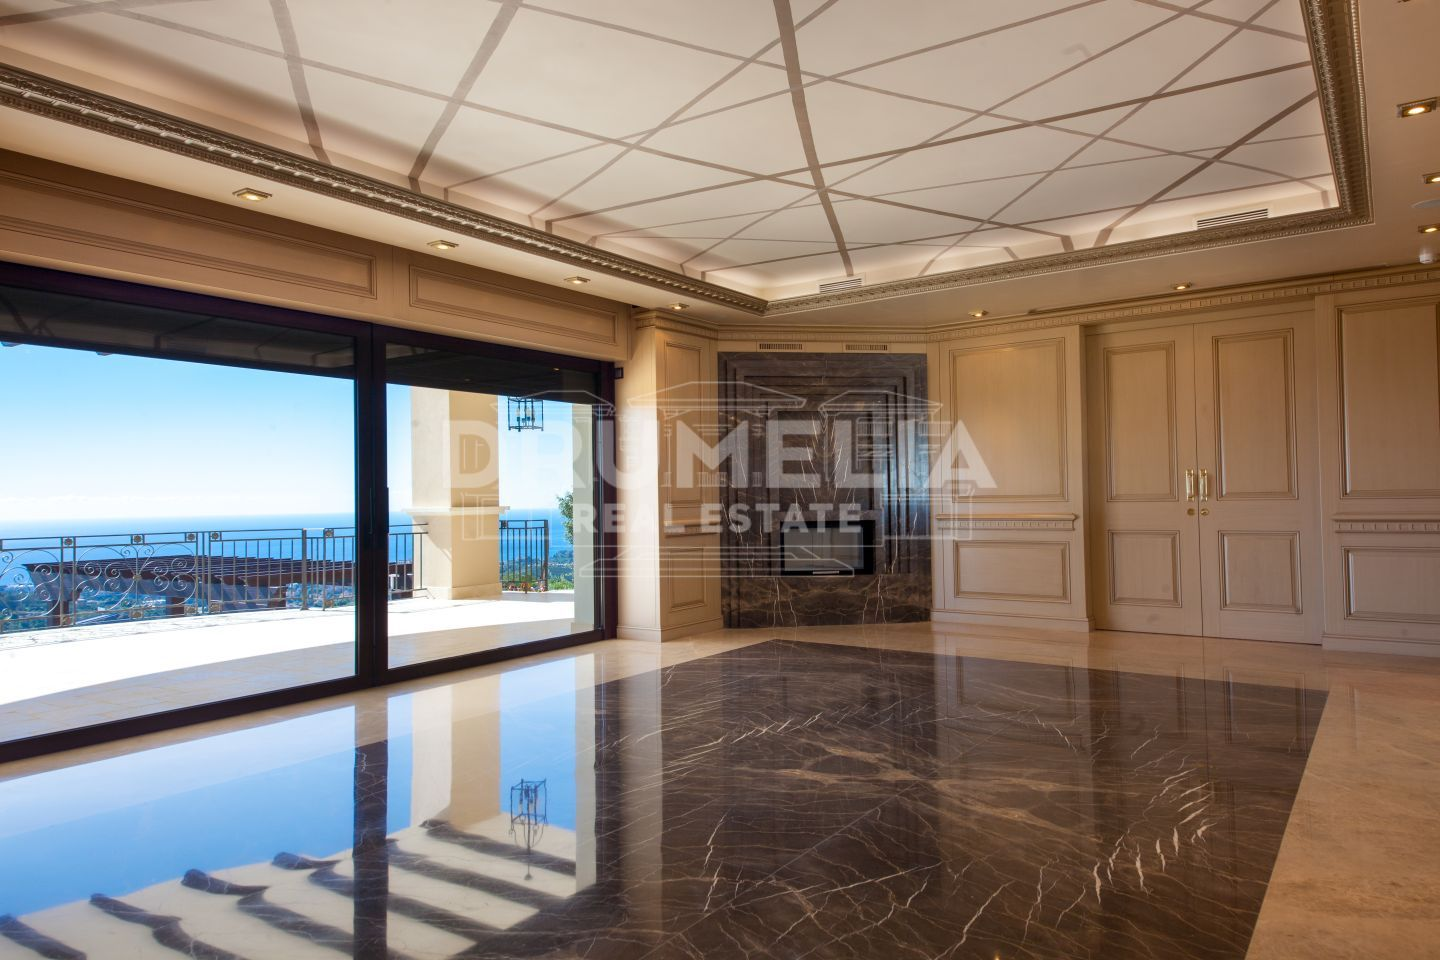 Marbella East, Brand-new Exquisite Luxury Villa with Panoramic Views, Los Altos de los Monteros, Marbella East (Marbella)